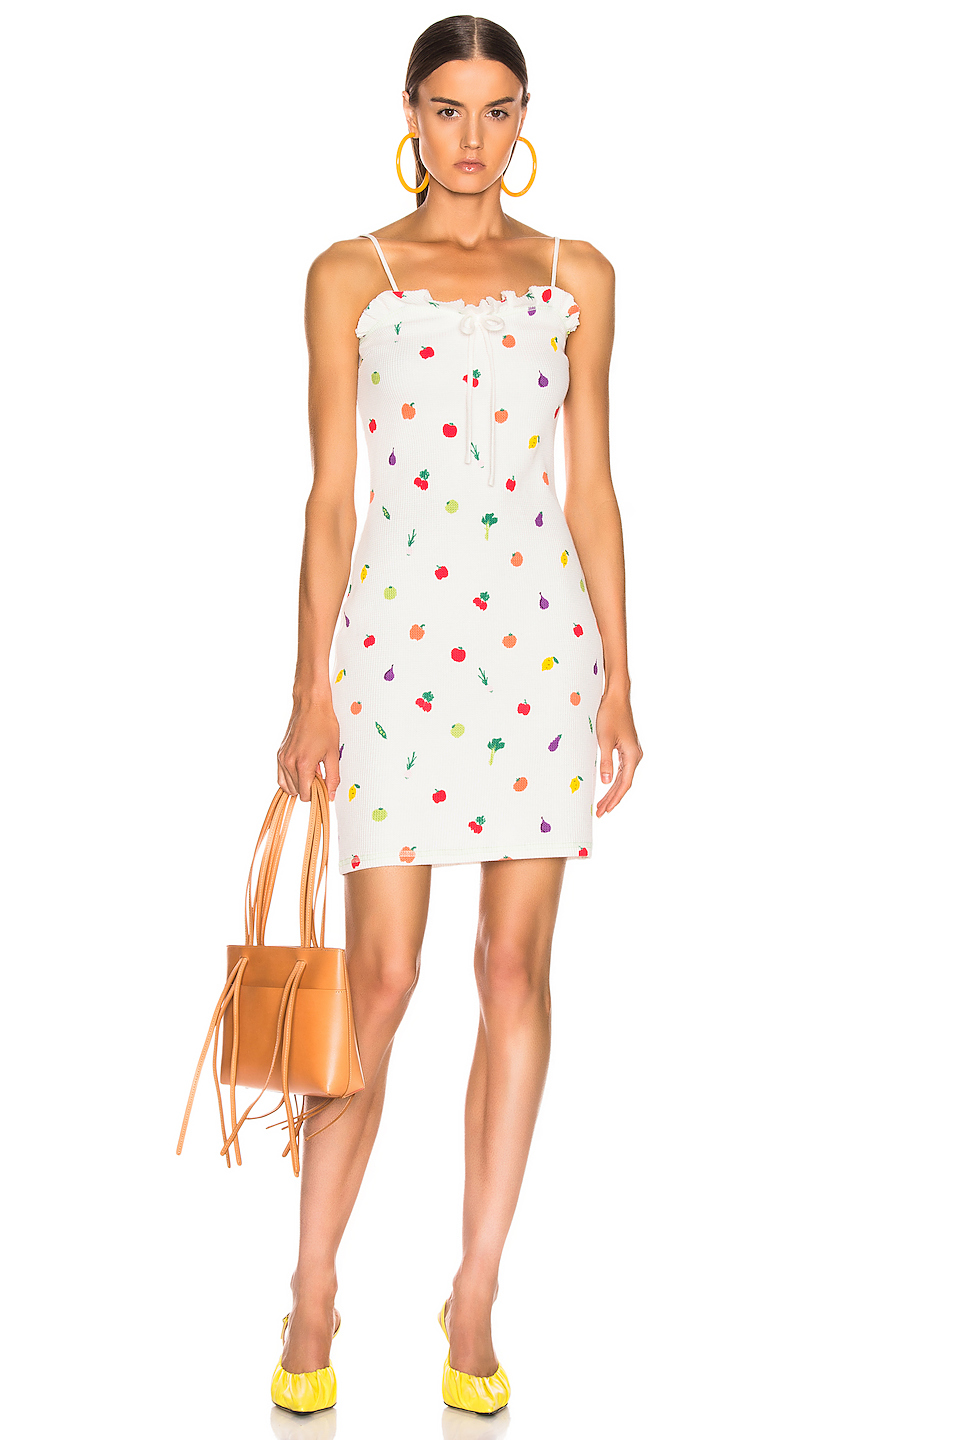 Bella Hadid wearing a Figure hugging ivory Staud salad printed mini dress with a knit fabric and thin shoulder strap